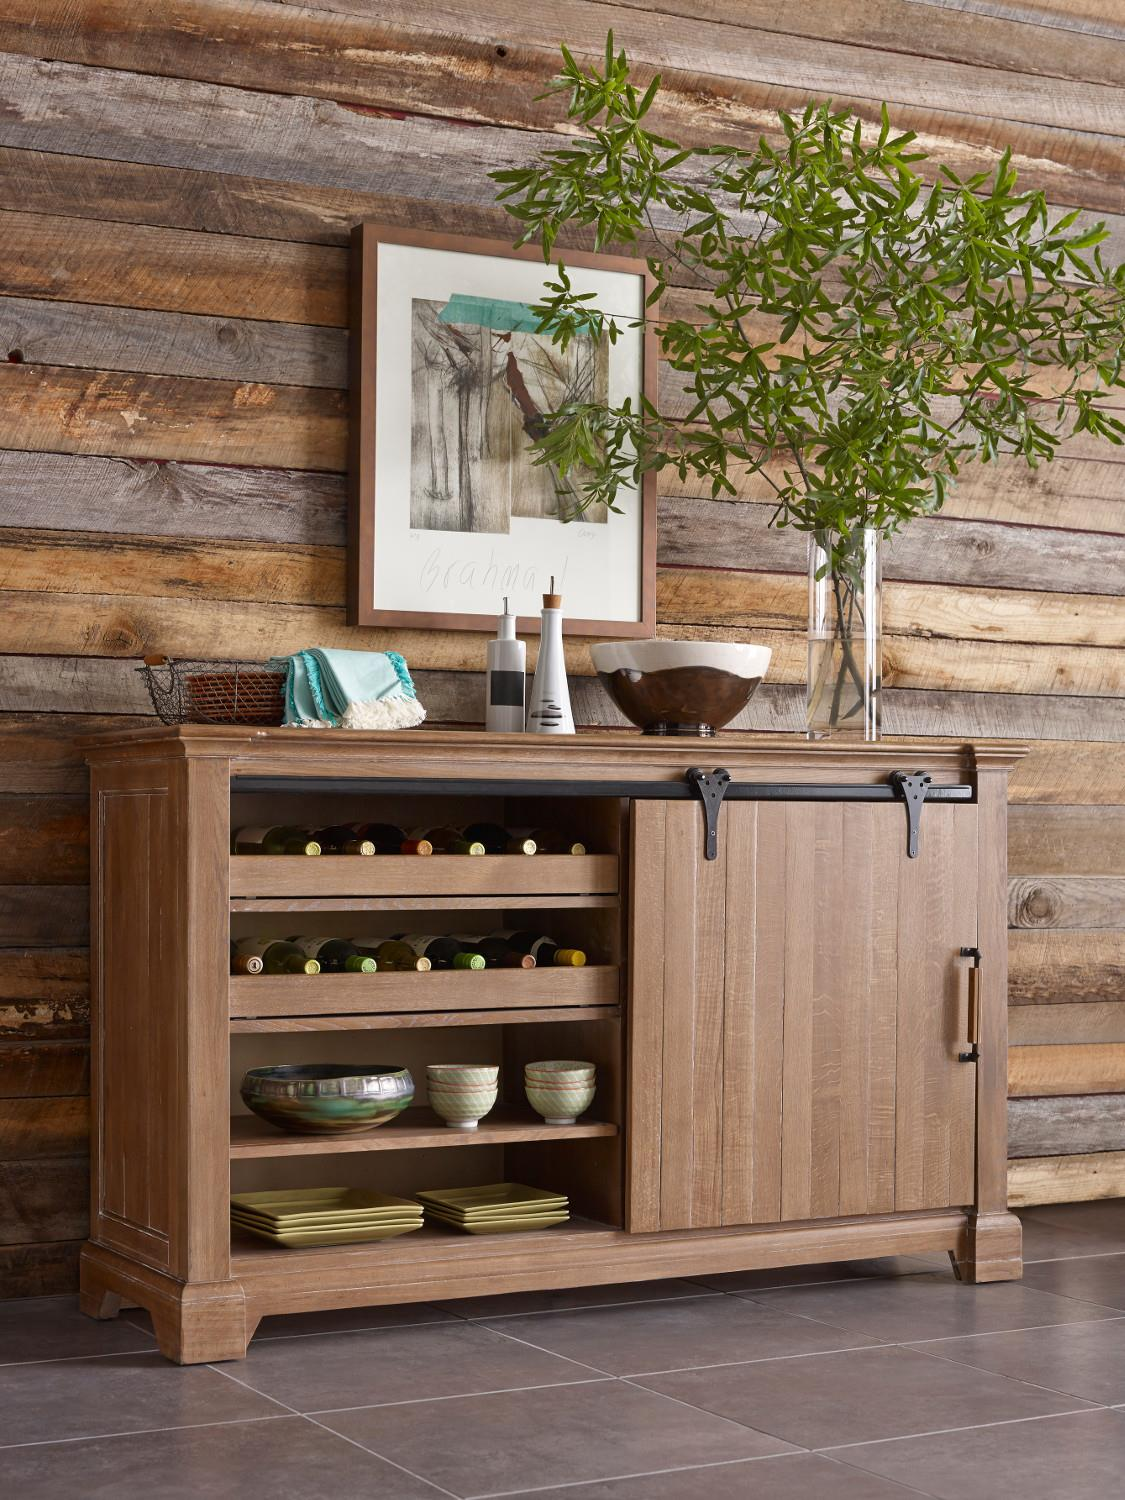 Transitional Rustic Sliding Barn Door Buffet With Wine Storage By Kincaid Furniture